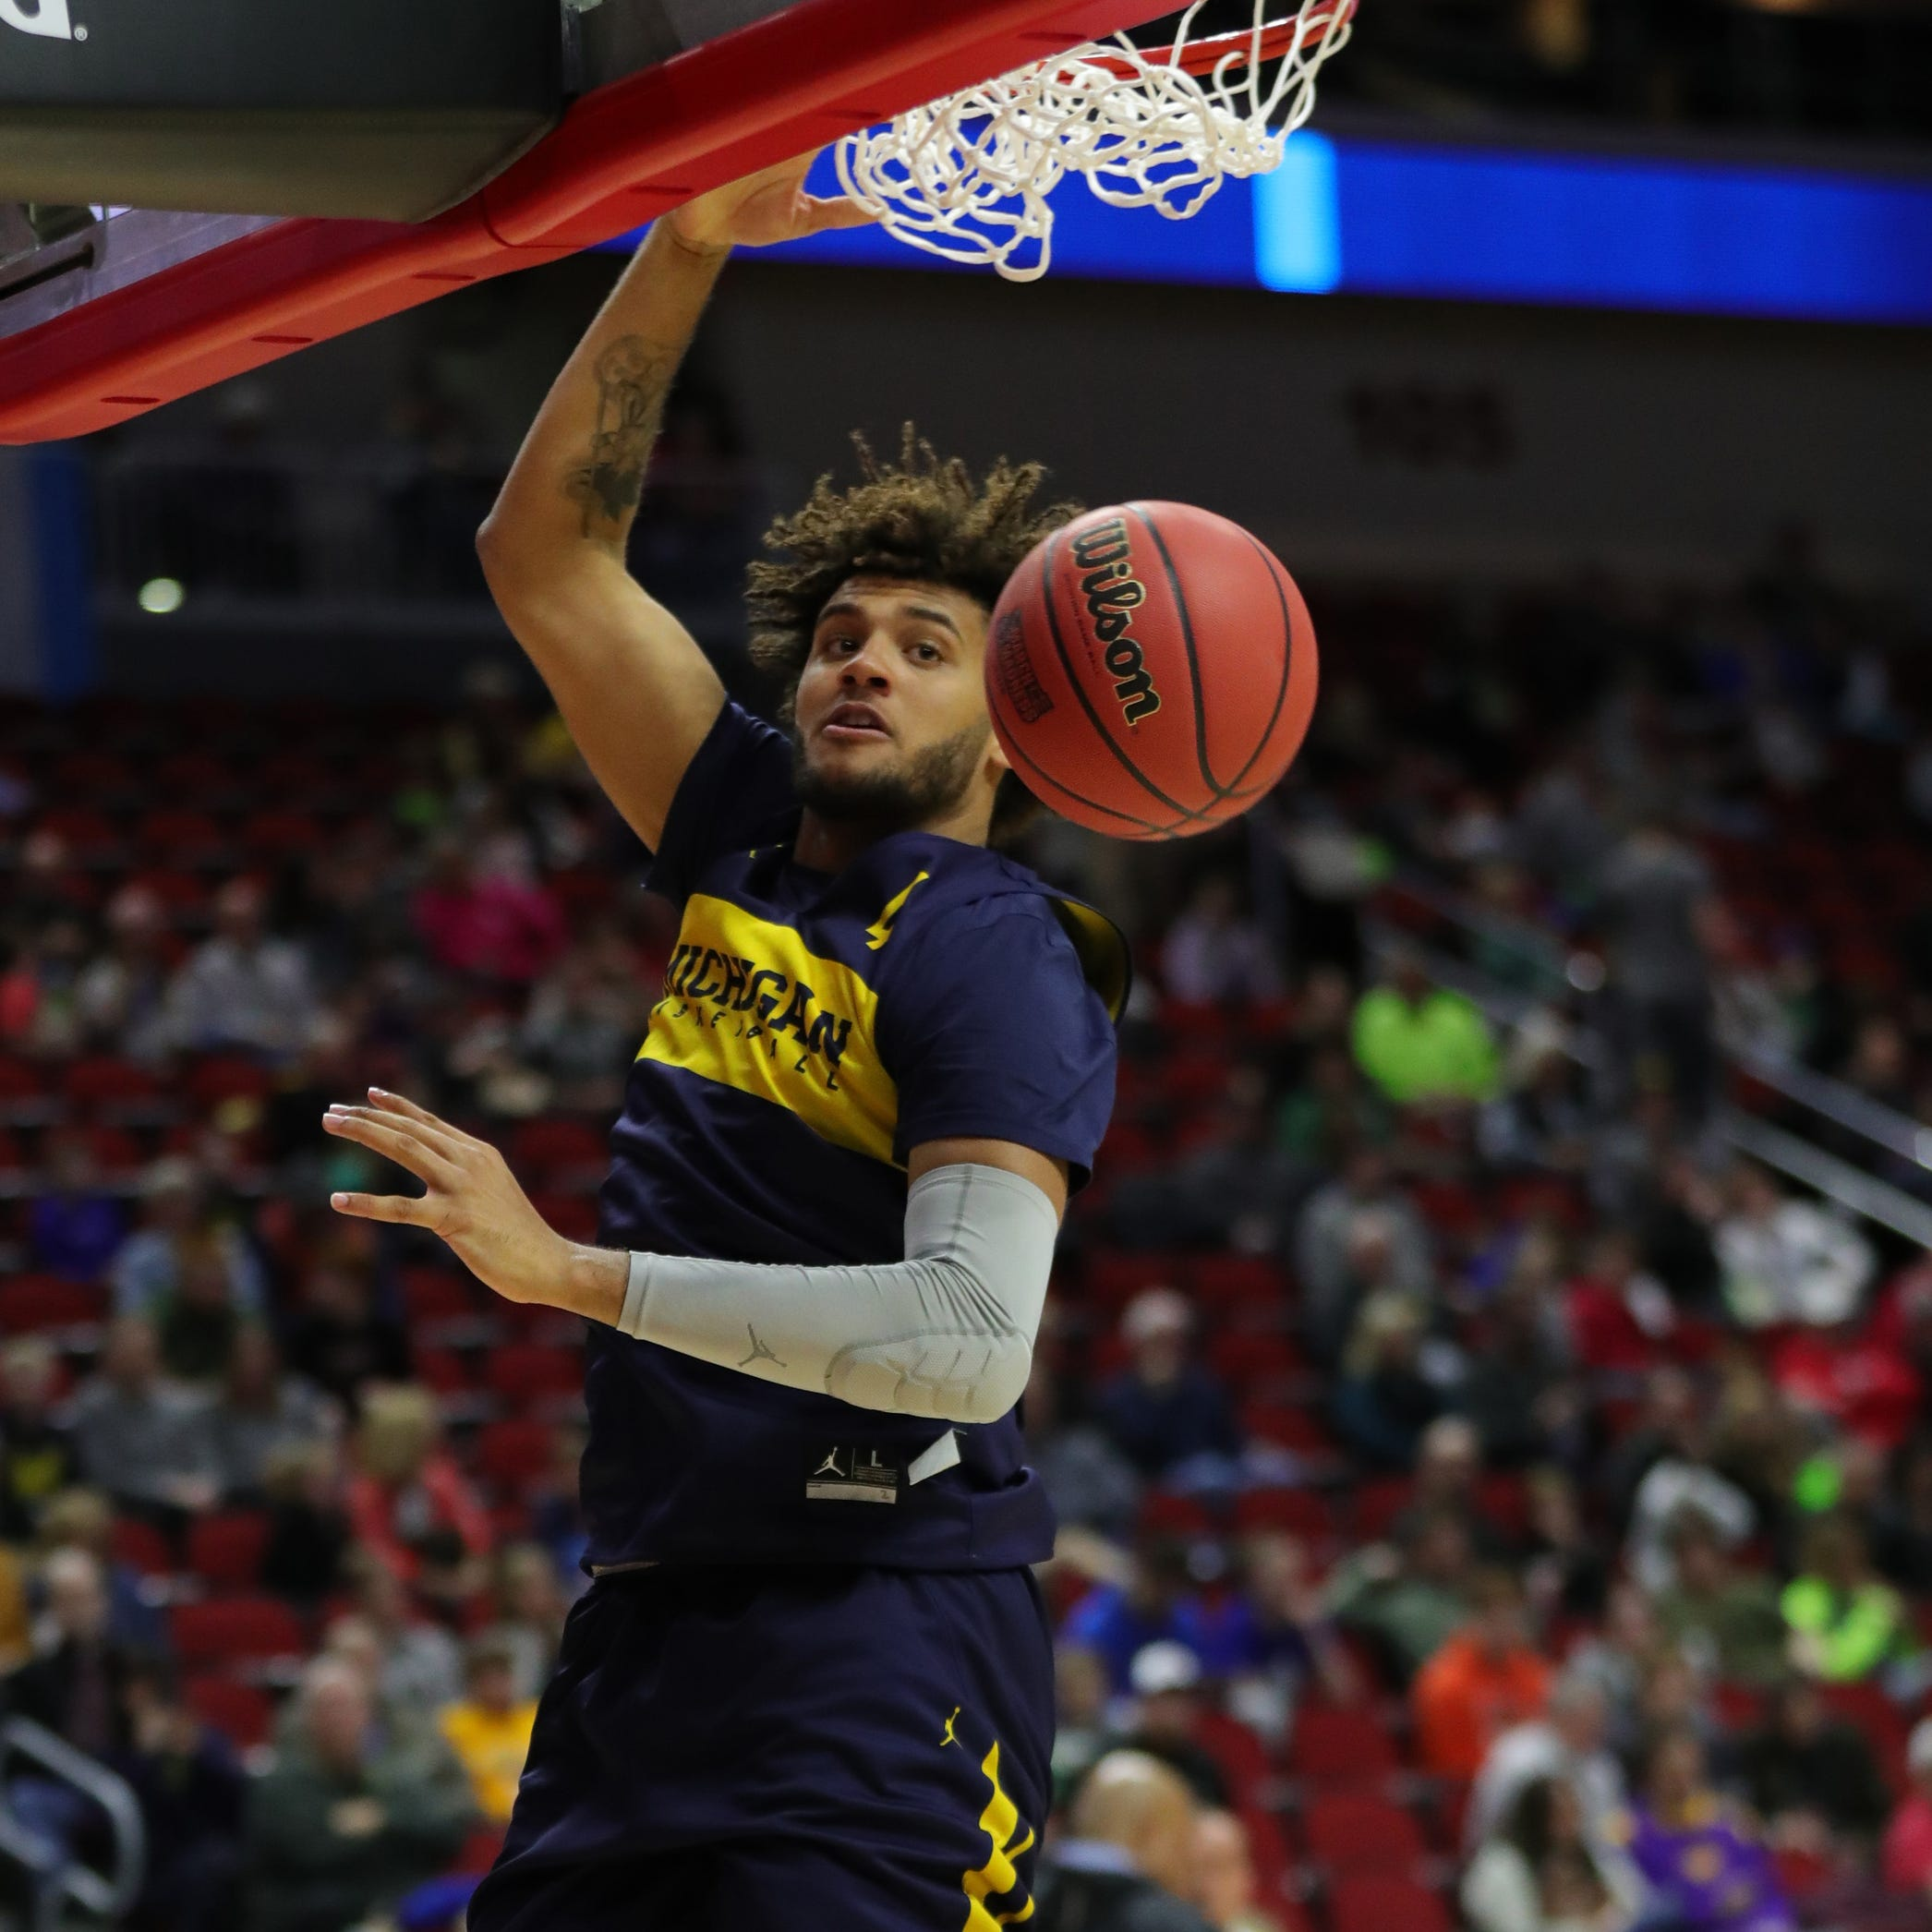 Michigan basketball's problem in NCAA tournament: Pebble in their shoe